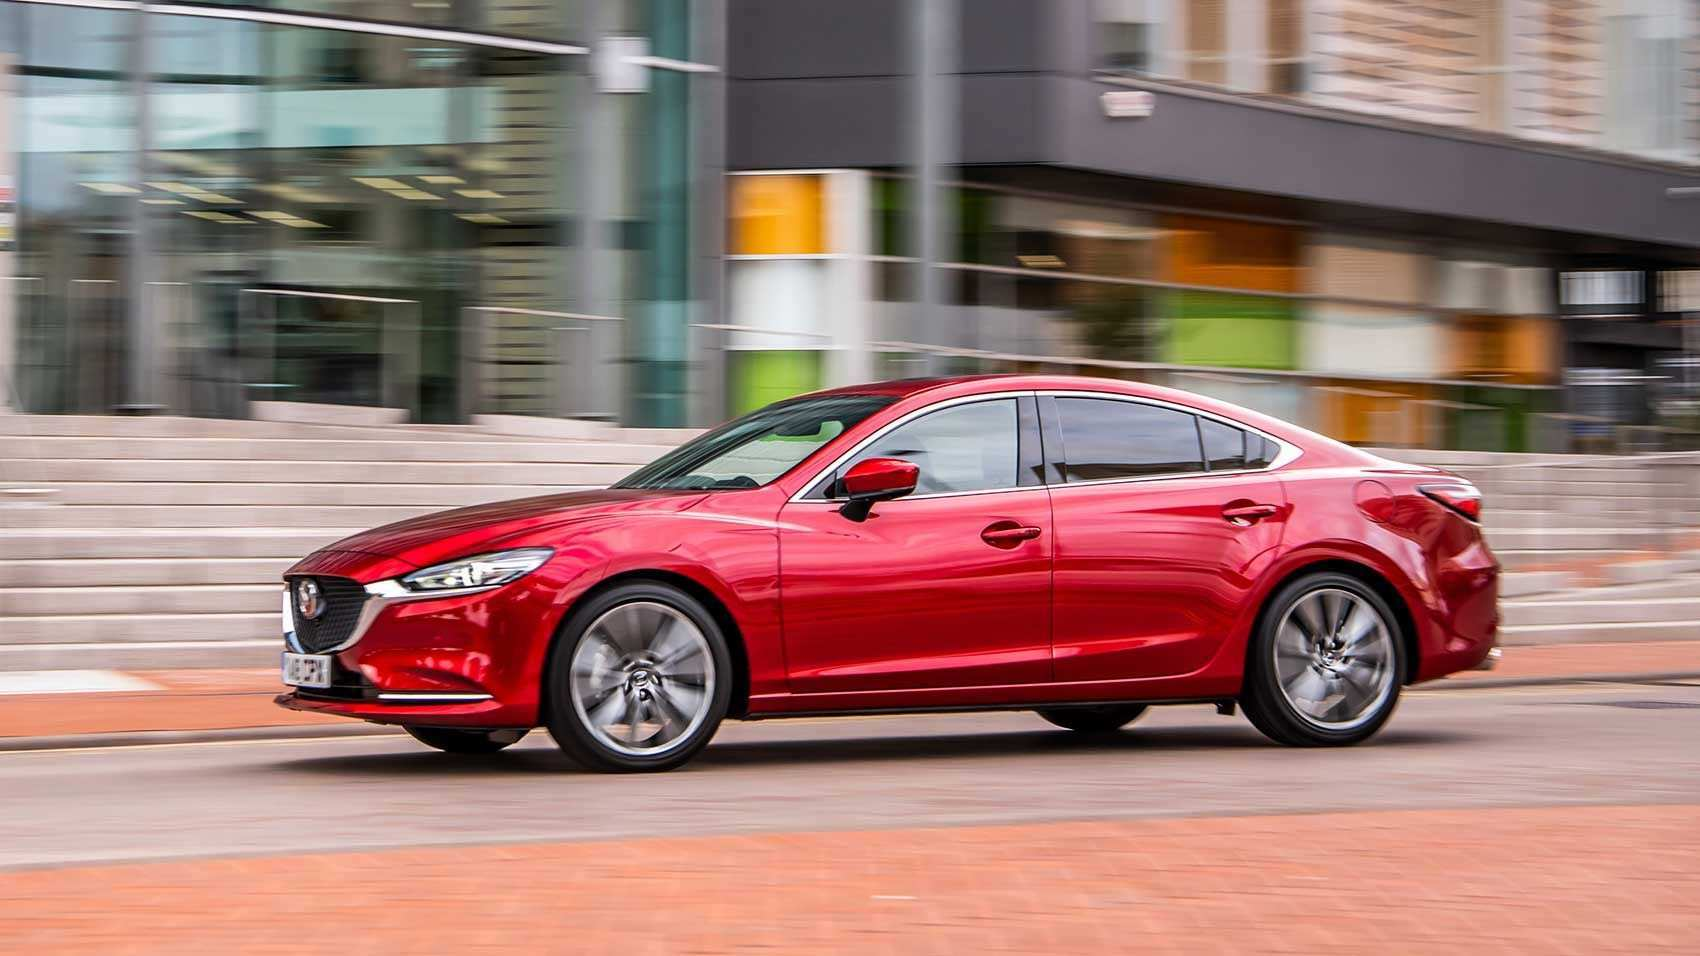 87 Gallery of New Mazda 6 2019 Uk Overview Speed Test with New Mazda 6 2019 Uk Overview